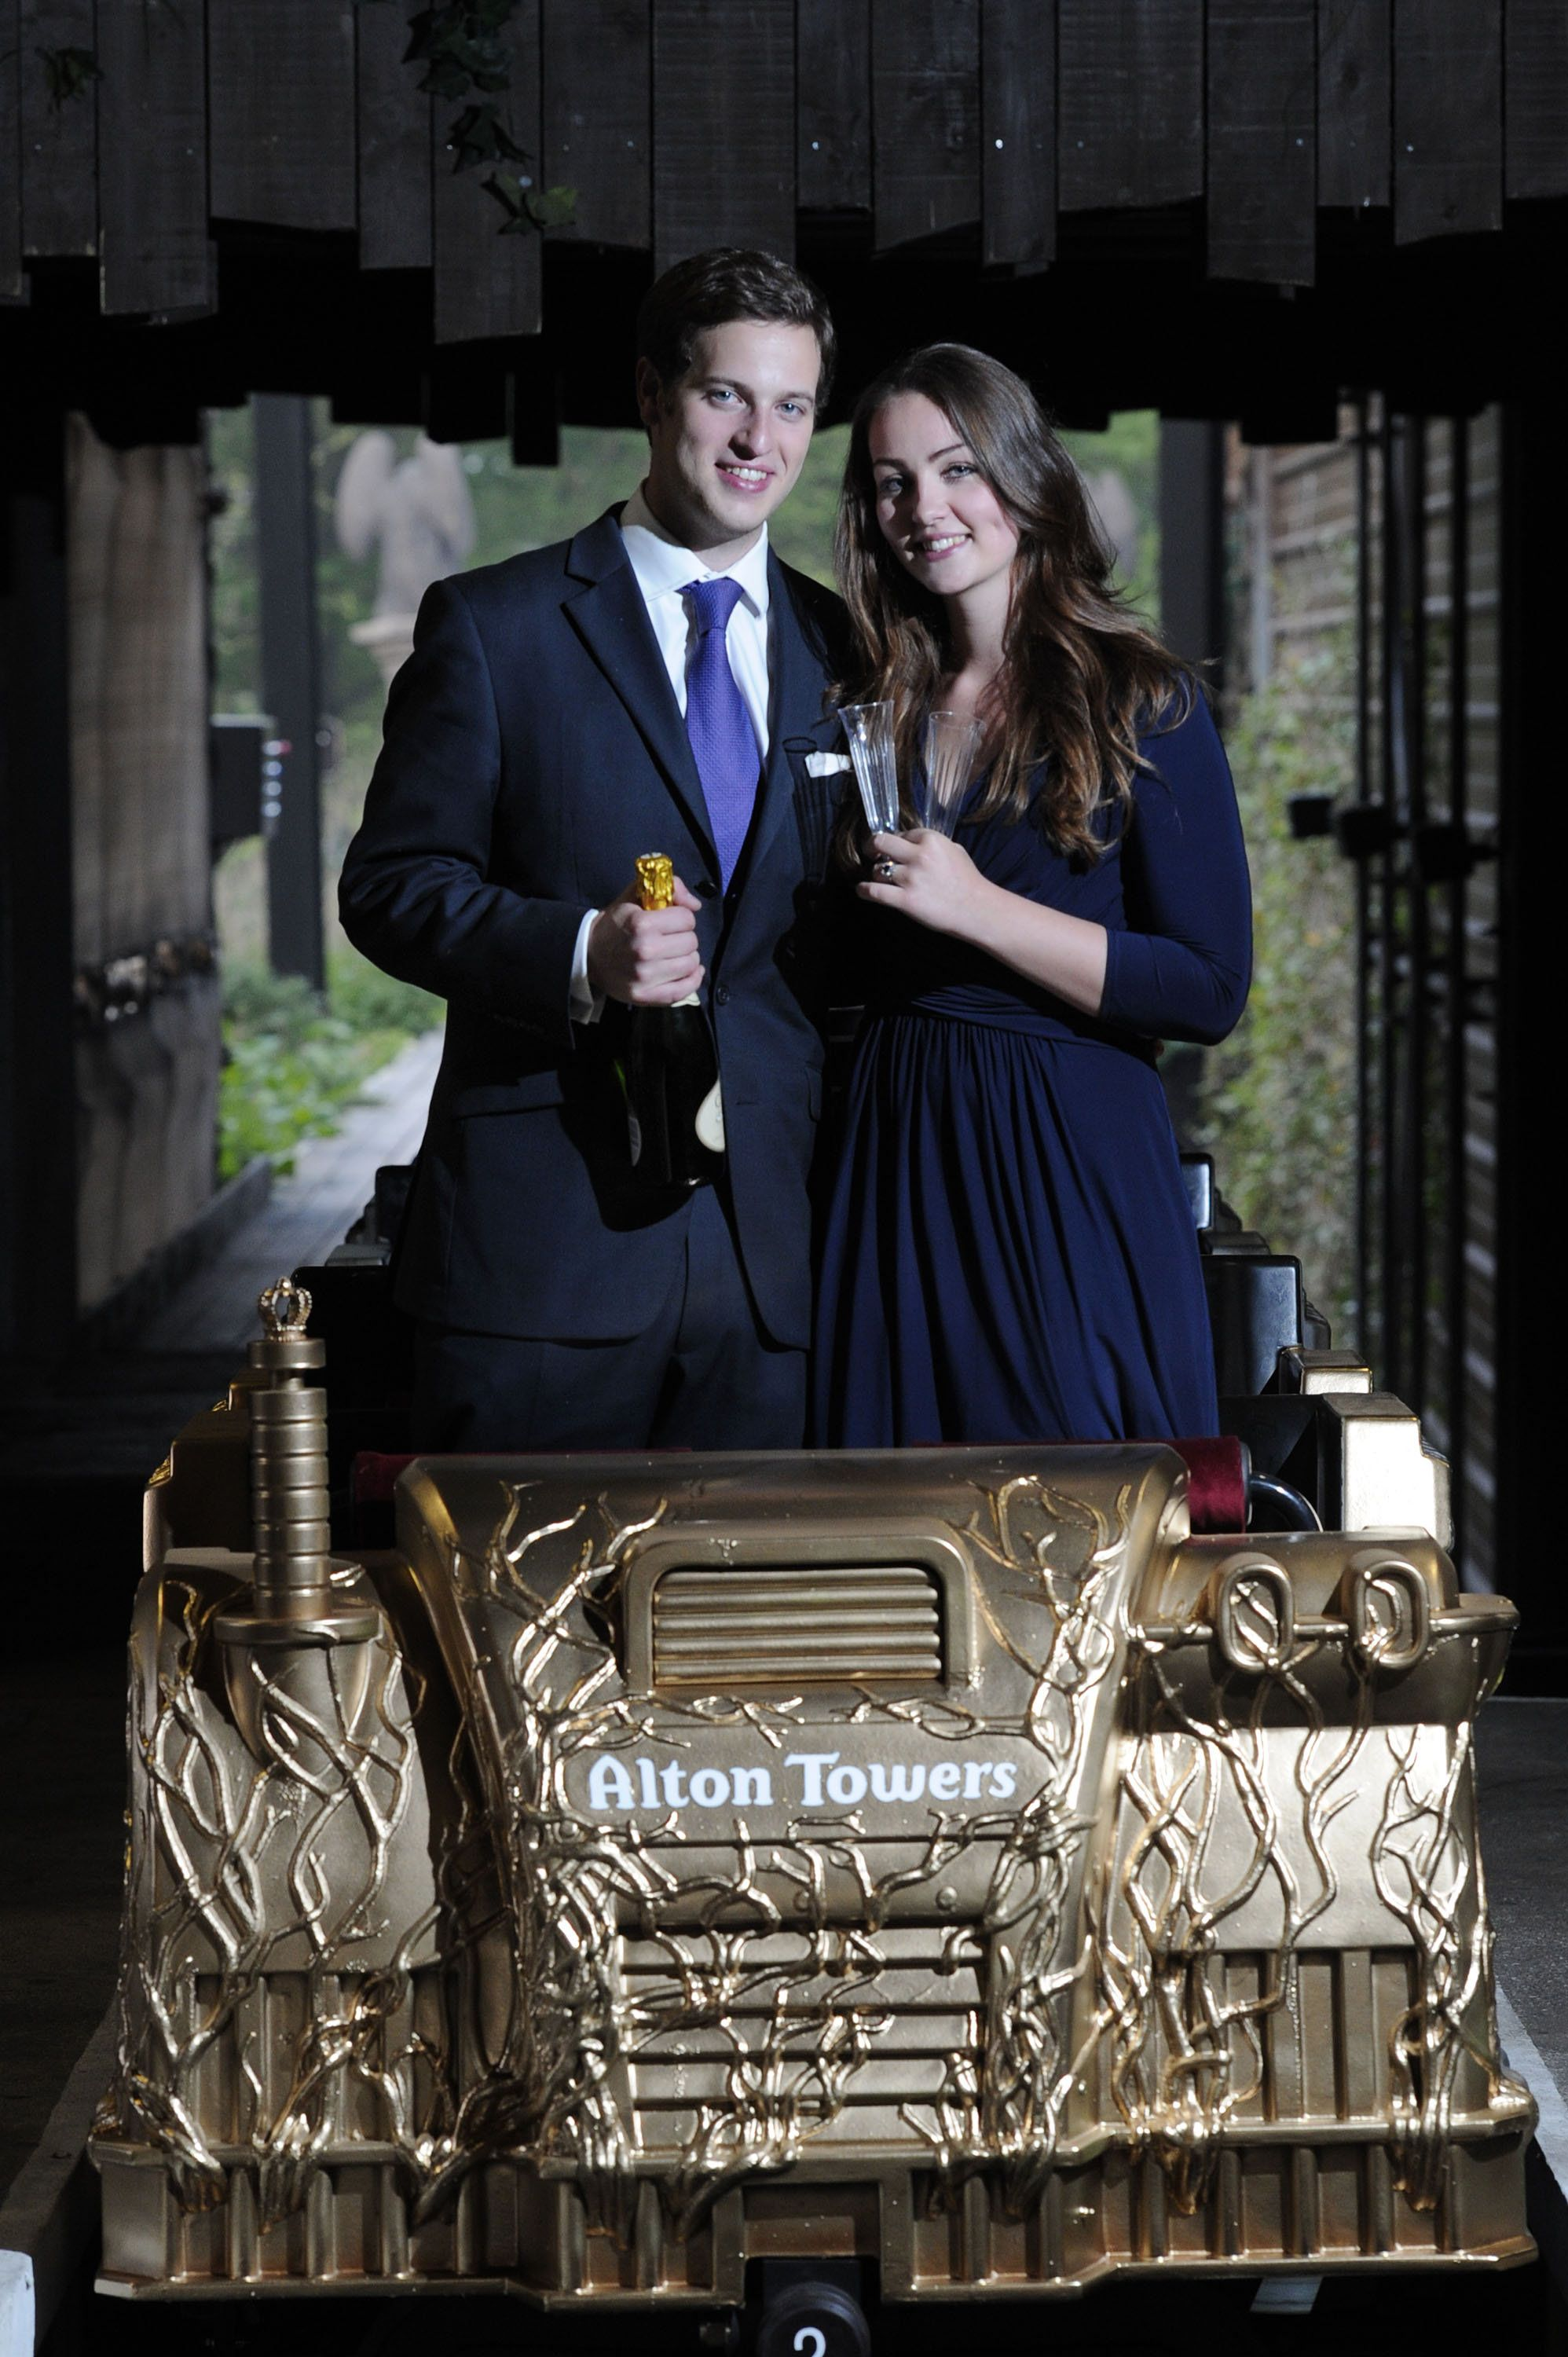 To Mark The Royal Wedding Of William And Kate Cod Steaks Were Commissioned By Alton Towers To Produce A Gold Editi Visitor Attraction Theme Park Royal Wedding